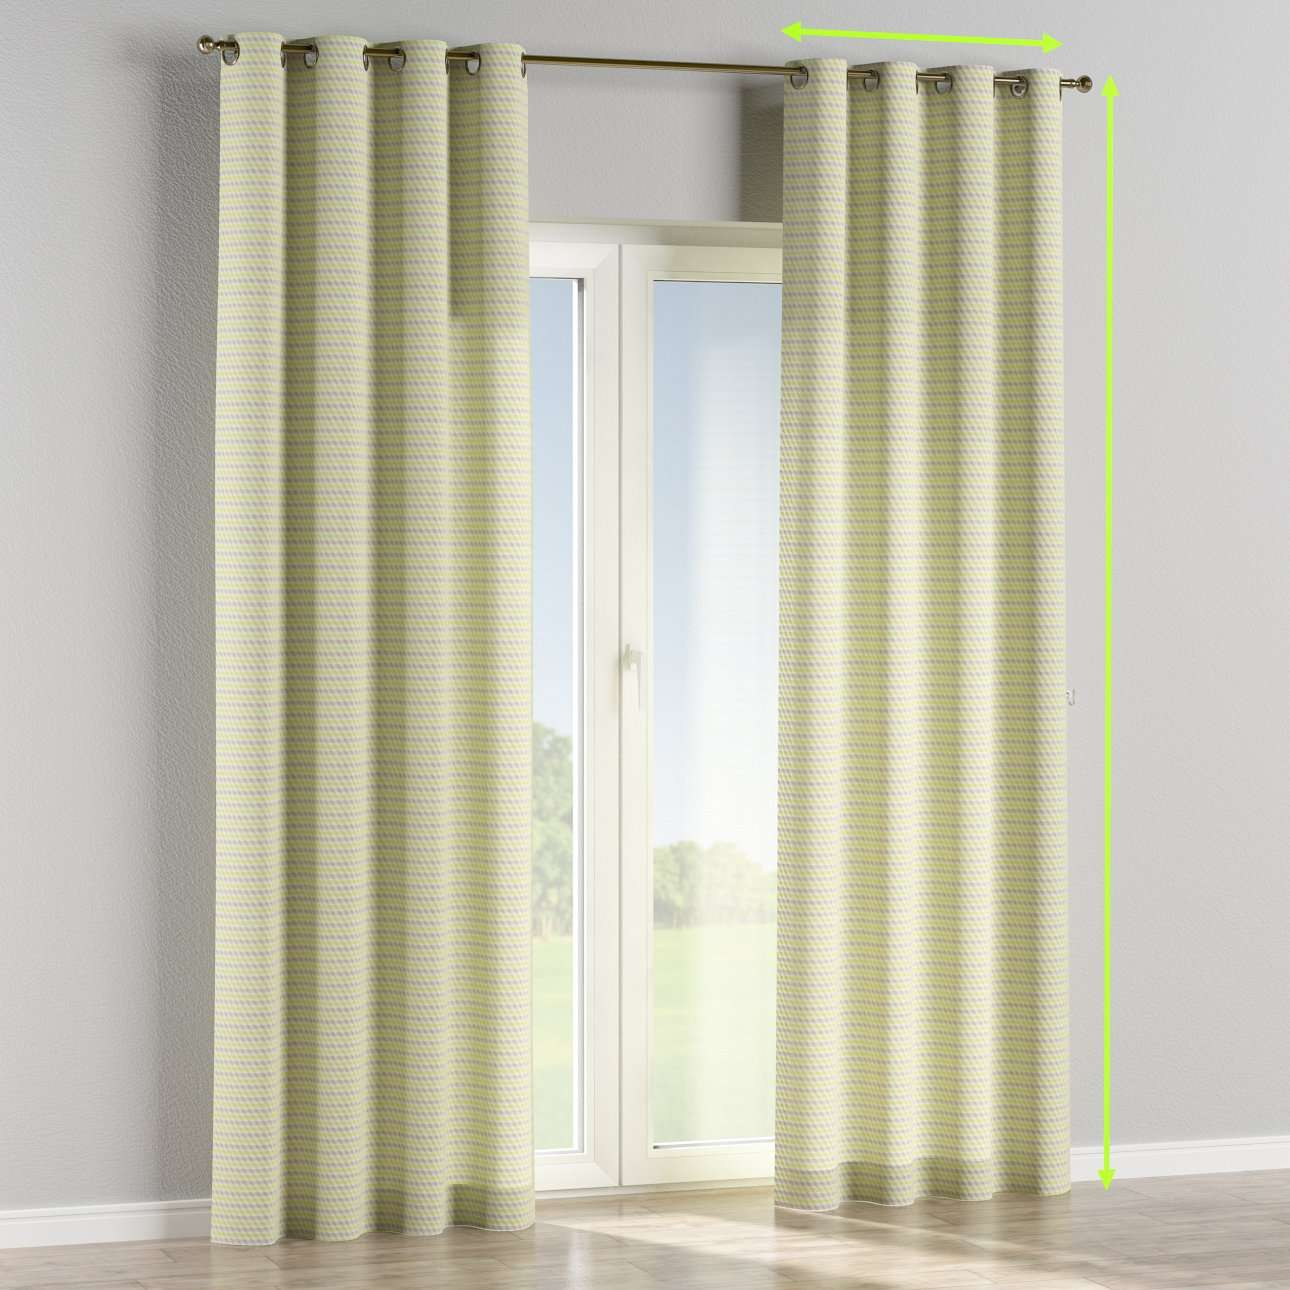 Eyelet curtain in collection SALE, fabric: 140-36